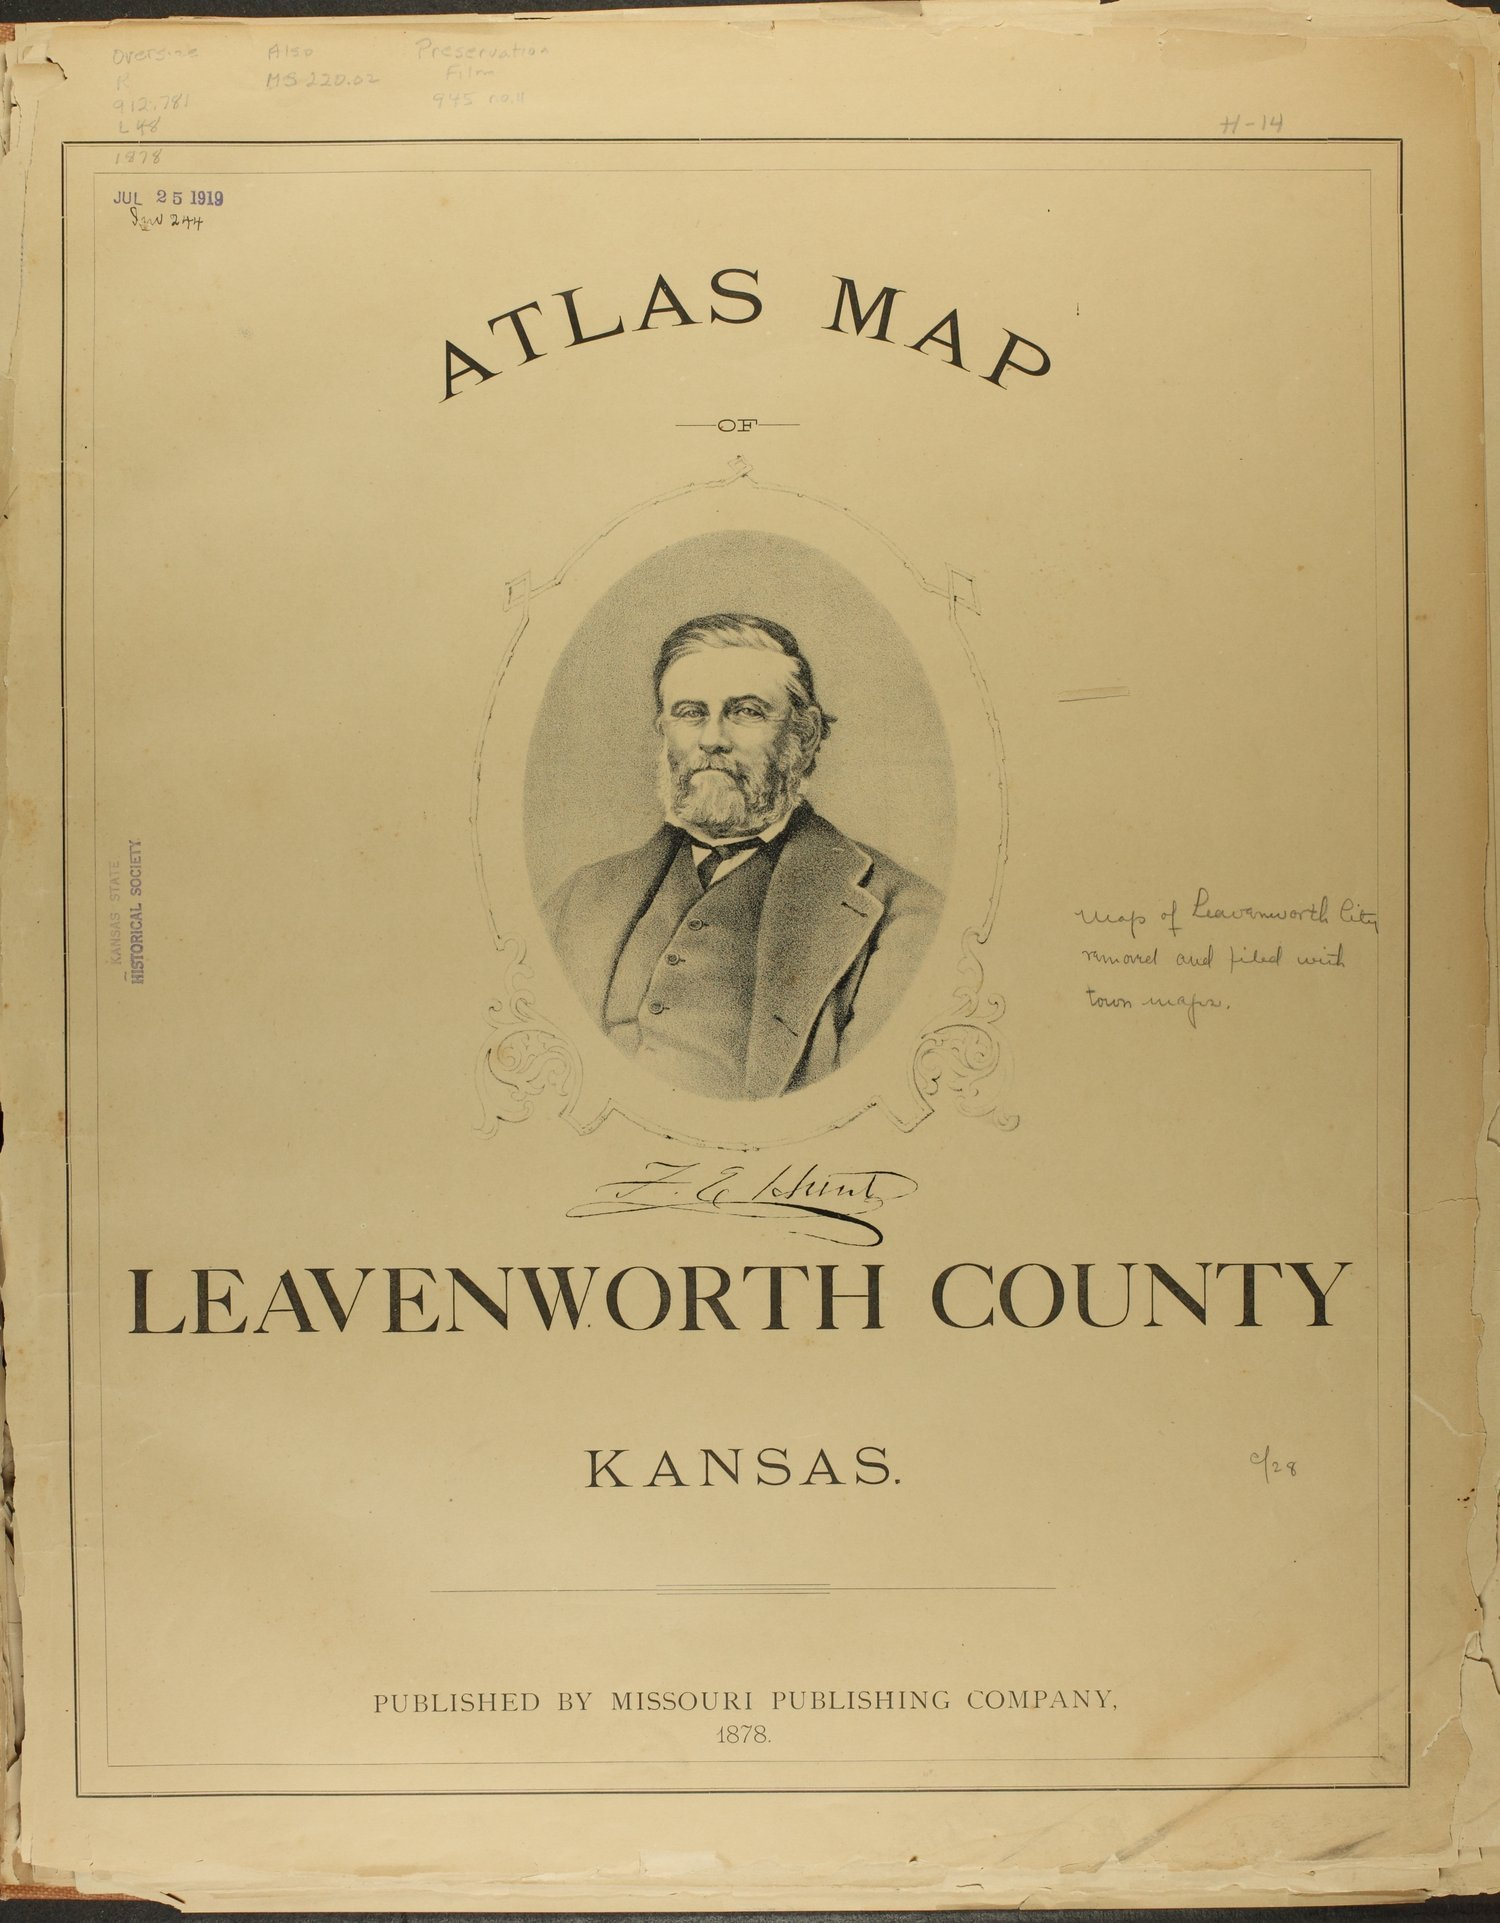 Atlas map of Leavenworth County, Kansas - Title Page